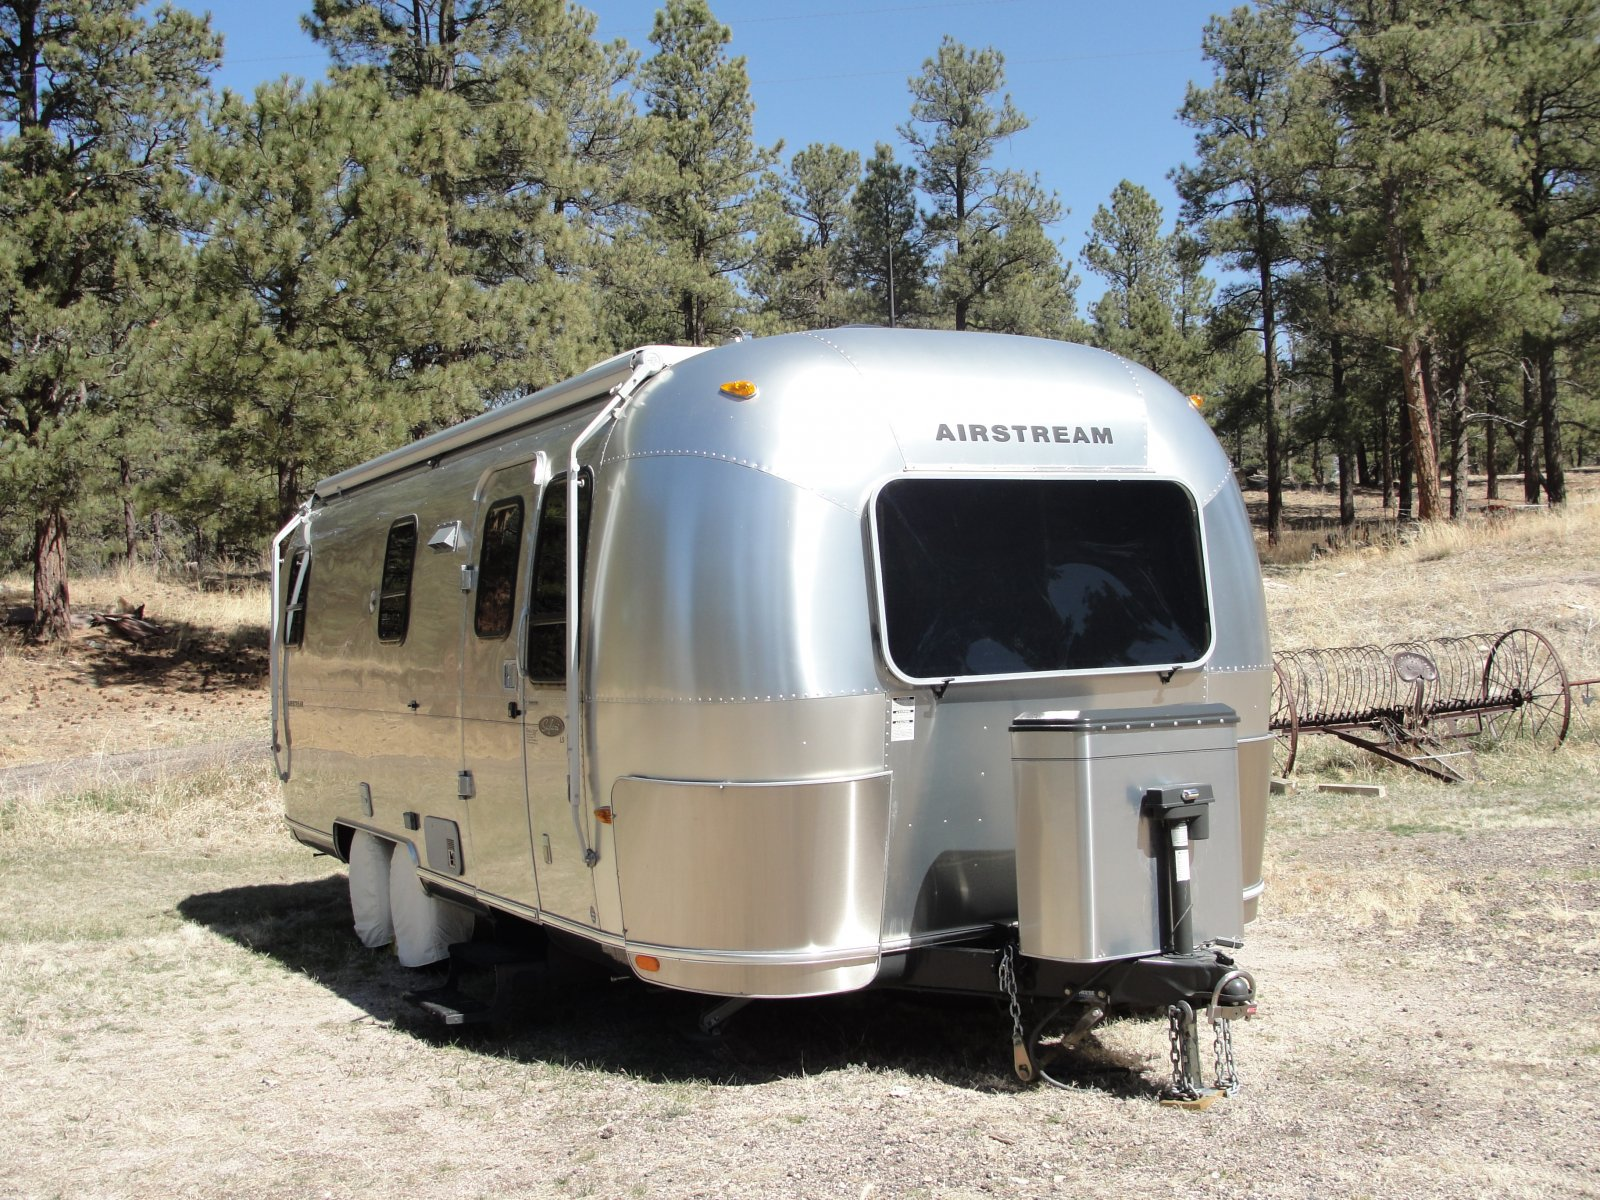 Click image for larger version  Name:Xena Lock & Airstream.jpg Views:154 Size:518.6 KB ID:126720